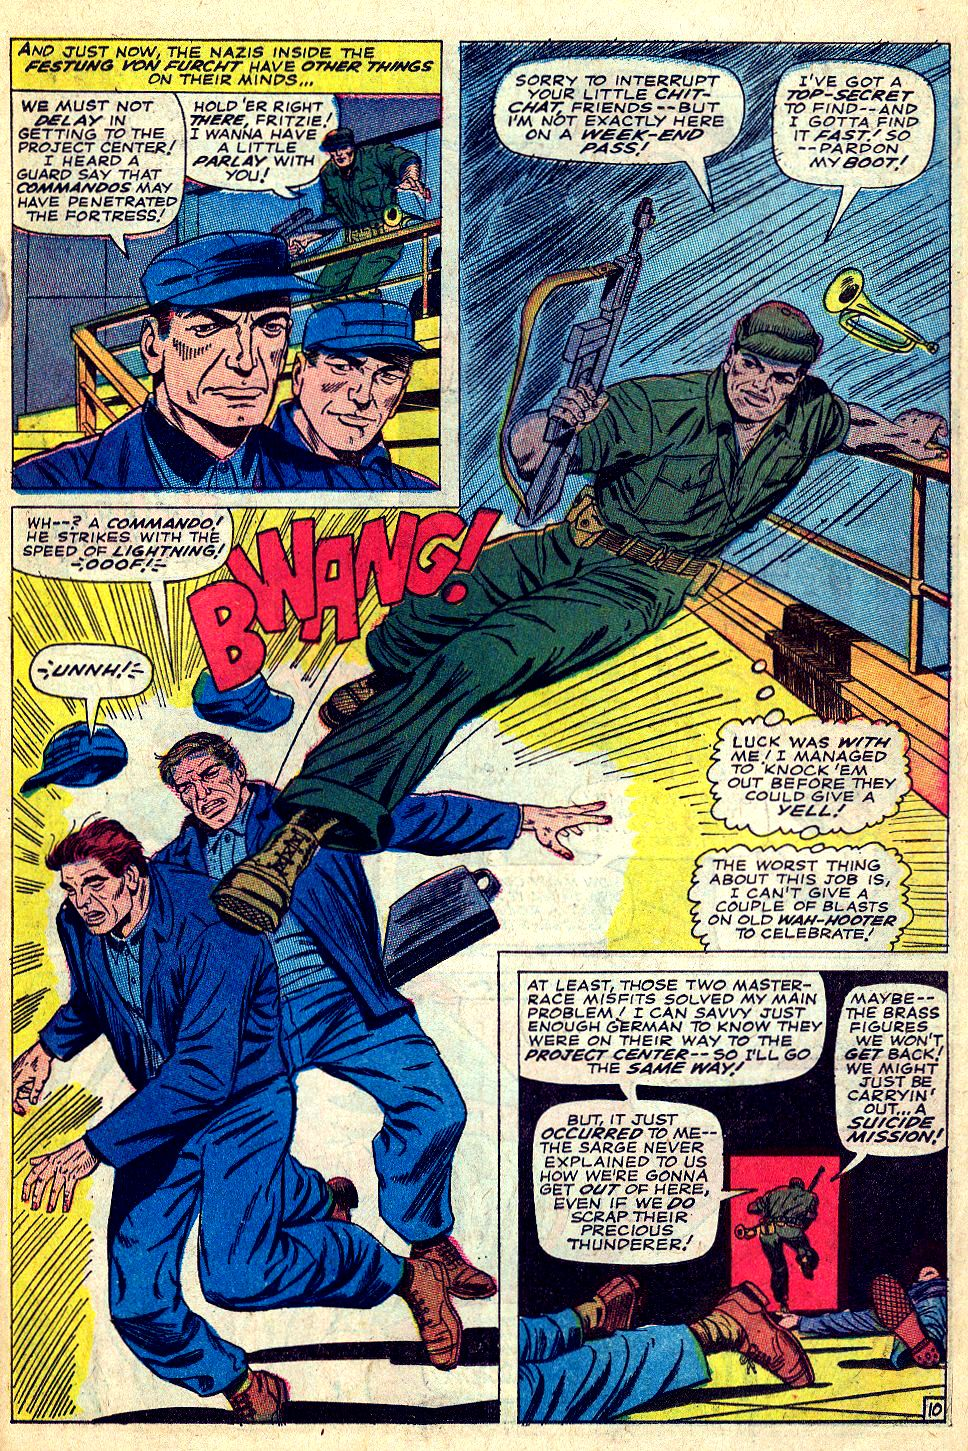 Read online Sgt. Fury comic -  Issue #39 - 15